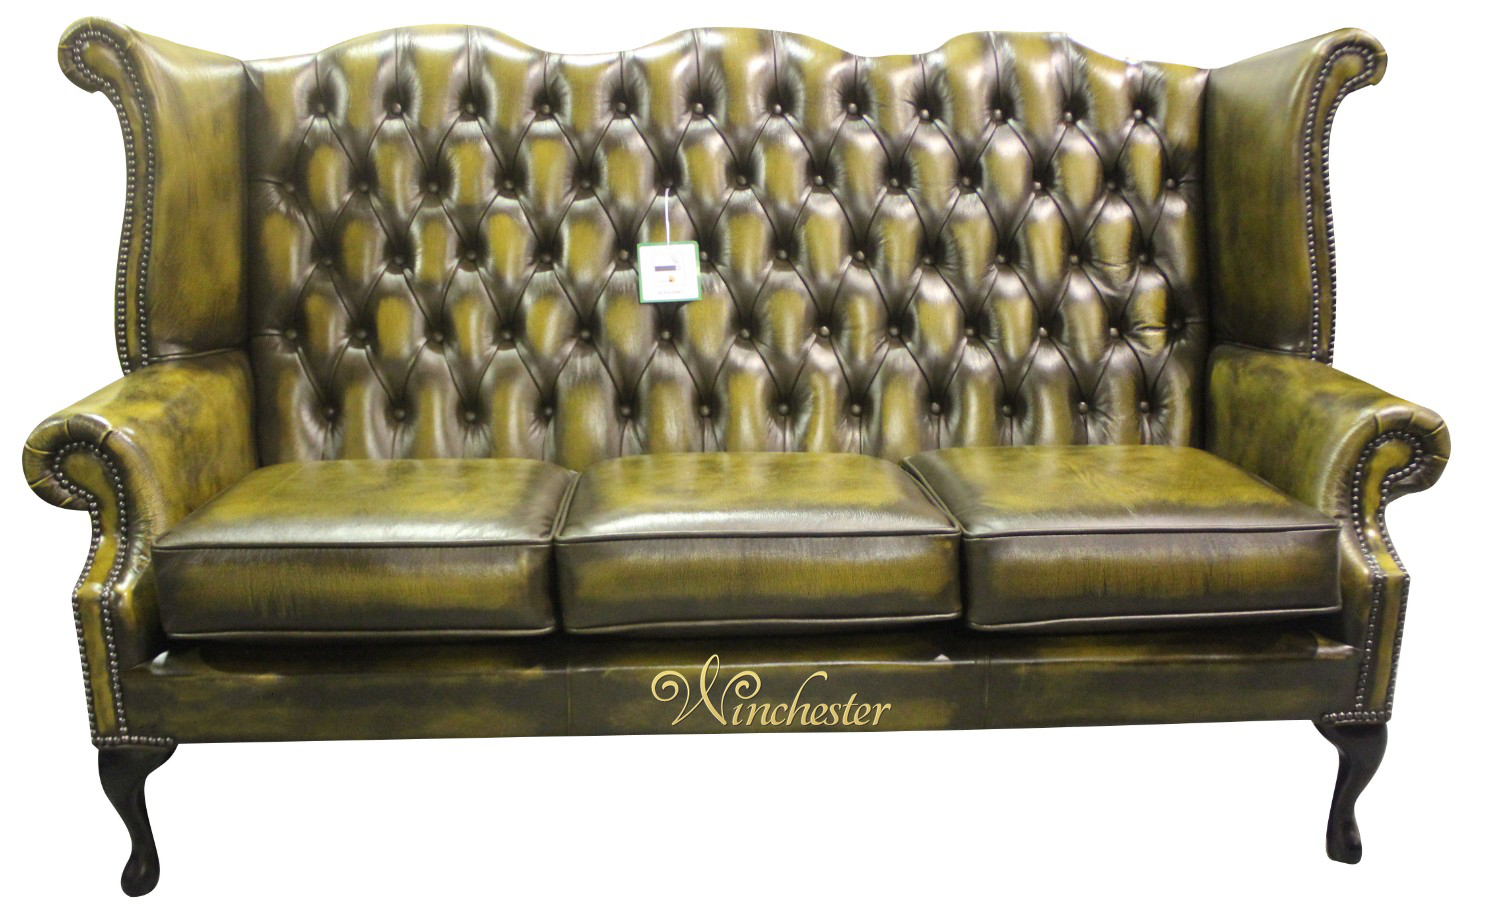 chesterfield 3 seater queen anne high back wing sofa chair. Black Bedroom Furniture Sets. Home Design Ideas